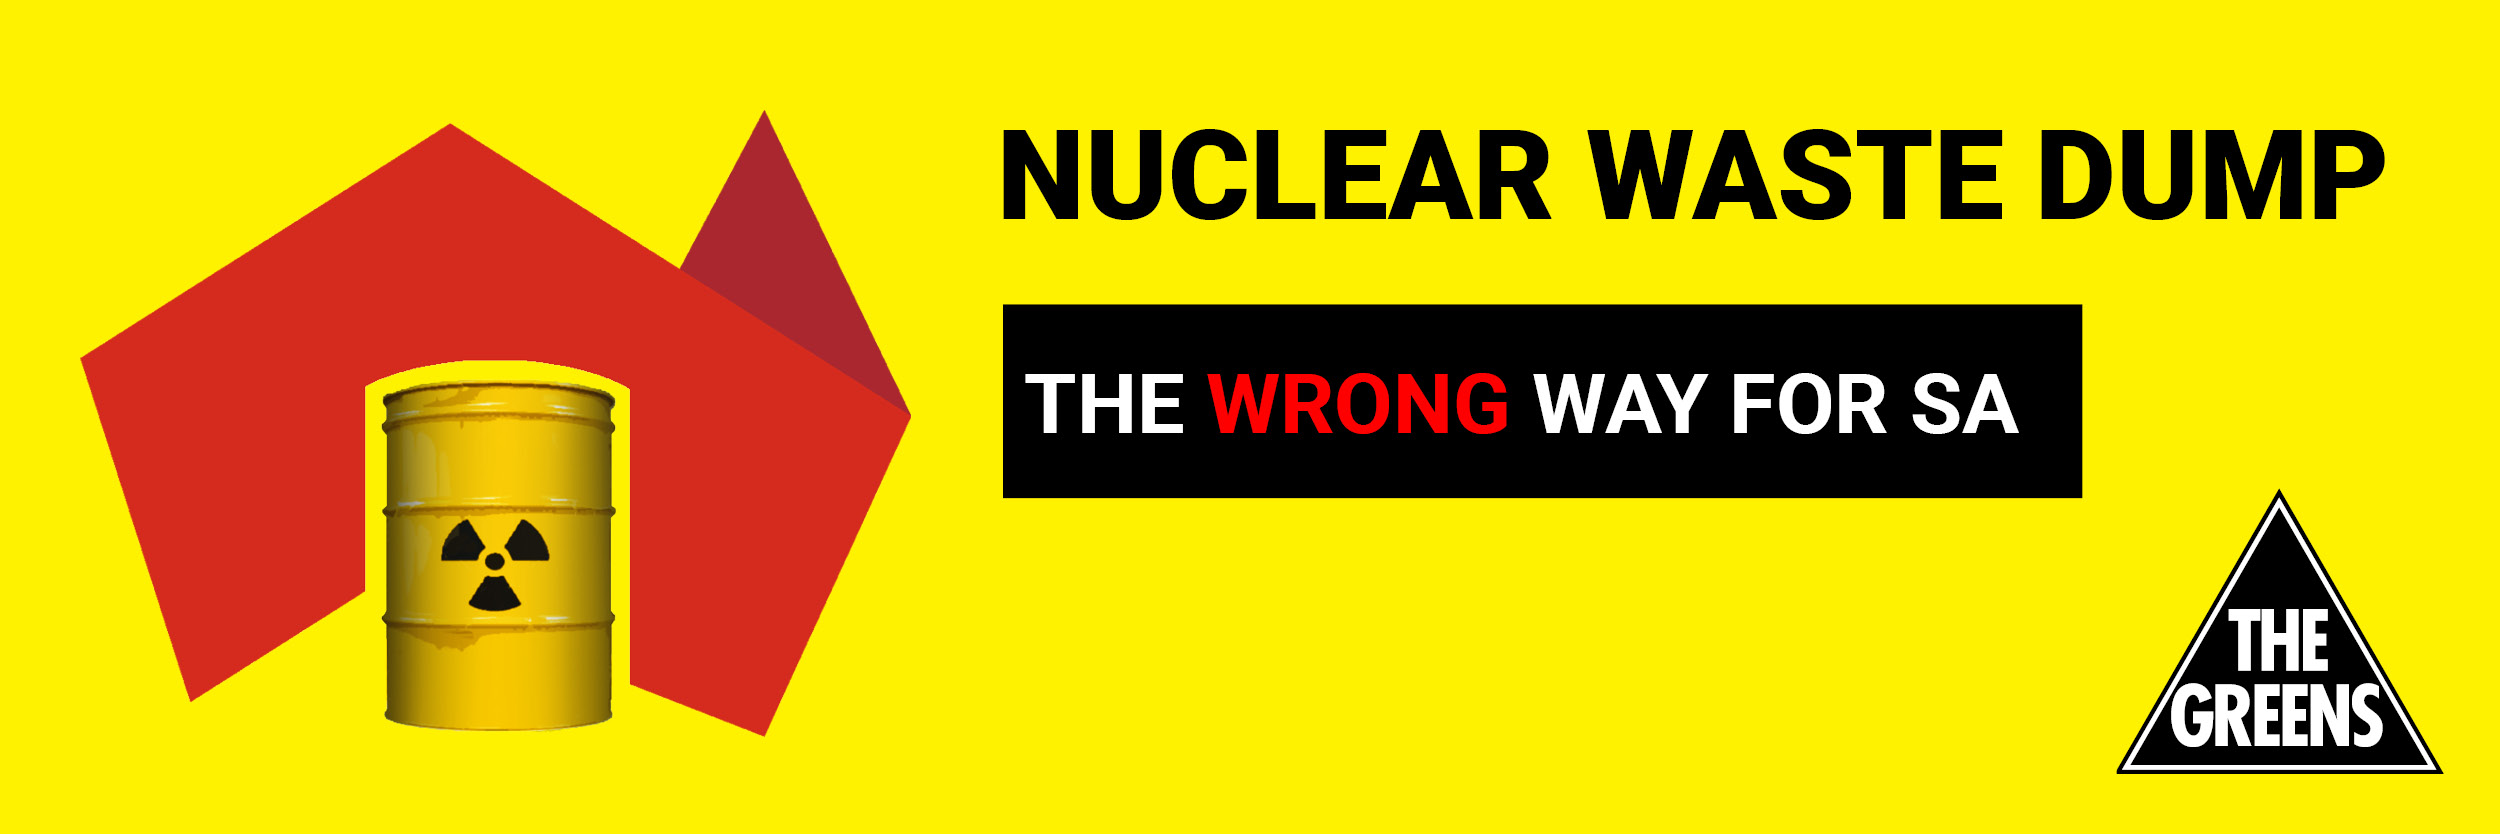 NuclearPublicMeeting_banner_19May2016.jpg